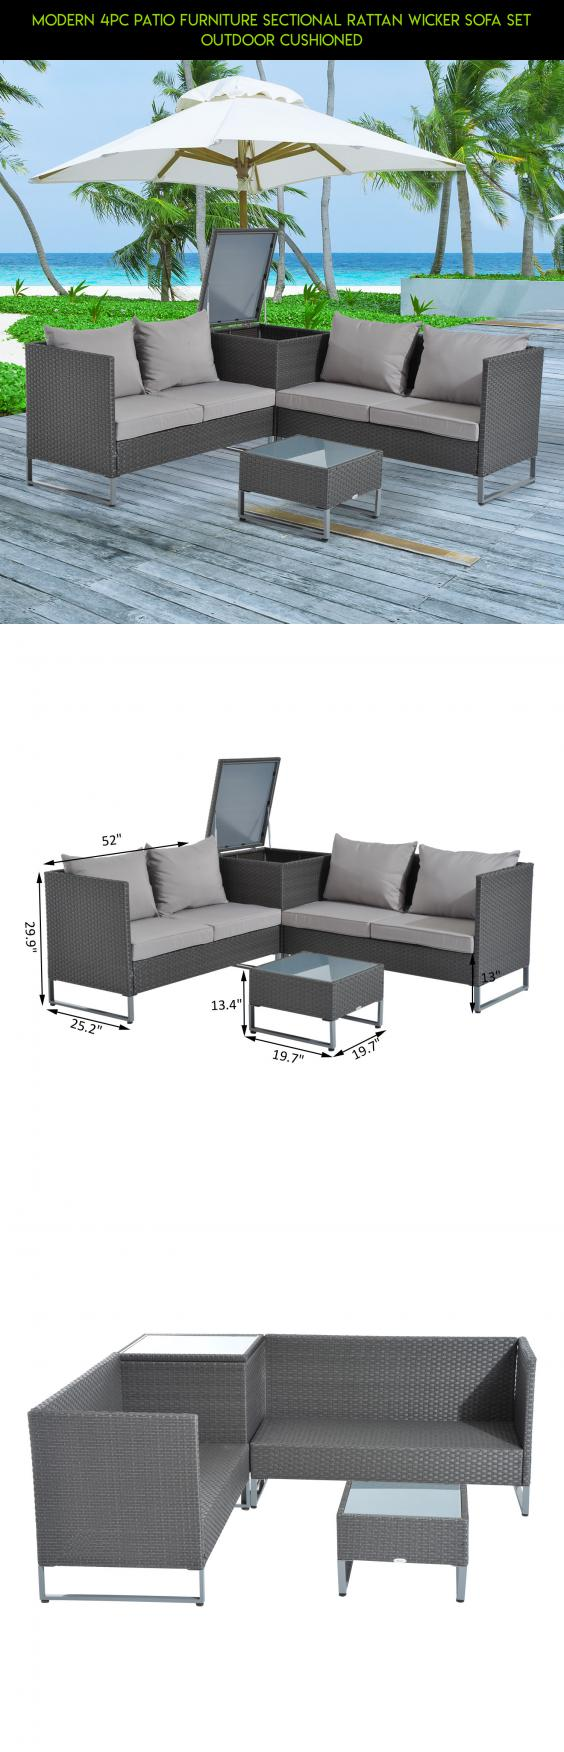 Modern 4pc Patio Furniture Sectional Rattan Wicker Sofa Set Outdoor  Cushioned #shopping #technology #